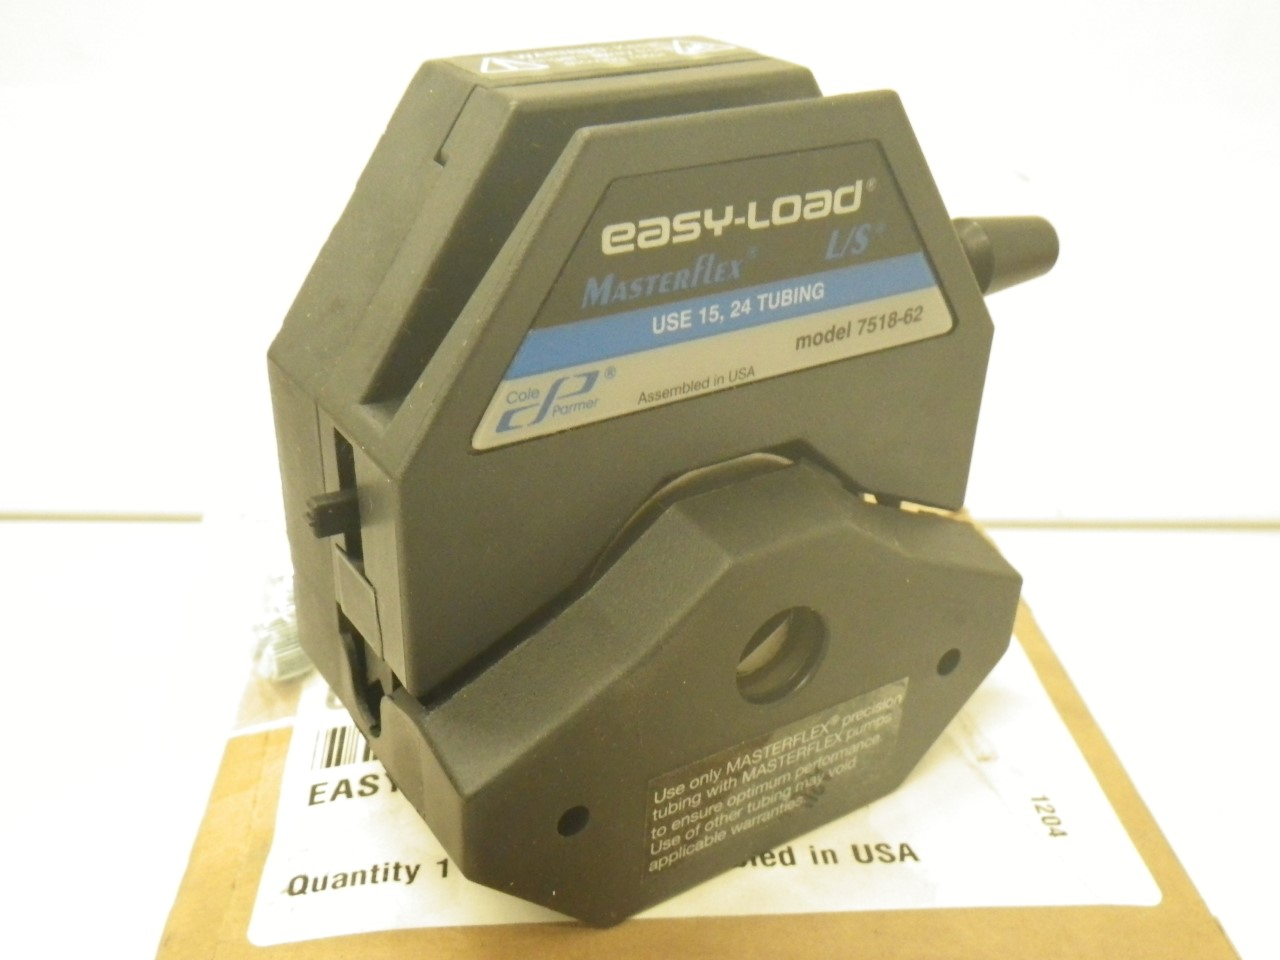 IMGP11207518-62 Cole Parmer Easy-load Masterflex Ls 7518-62 Pump Head (New with Box) (16)